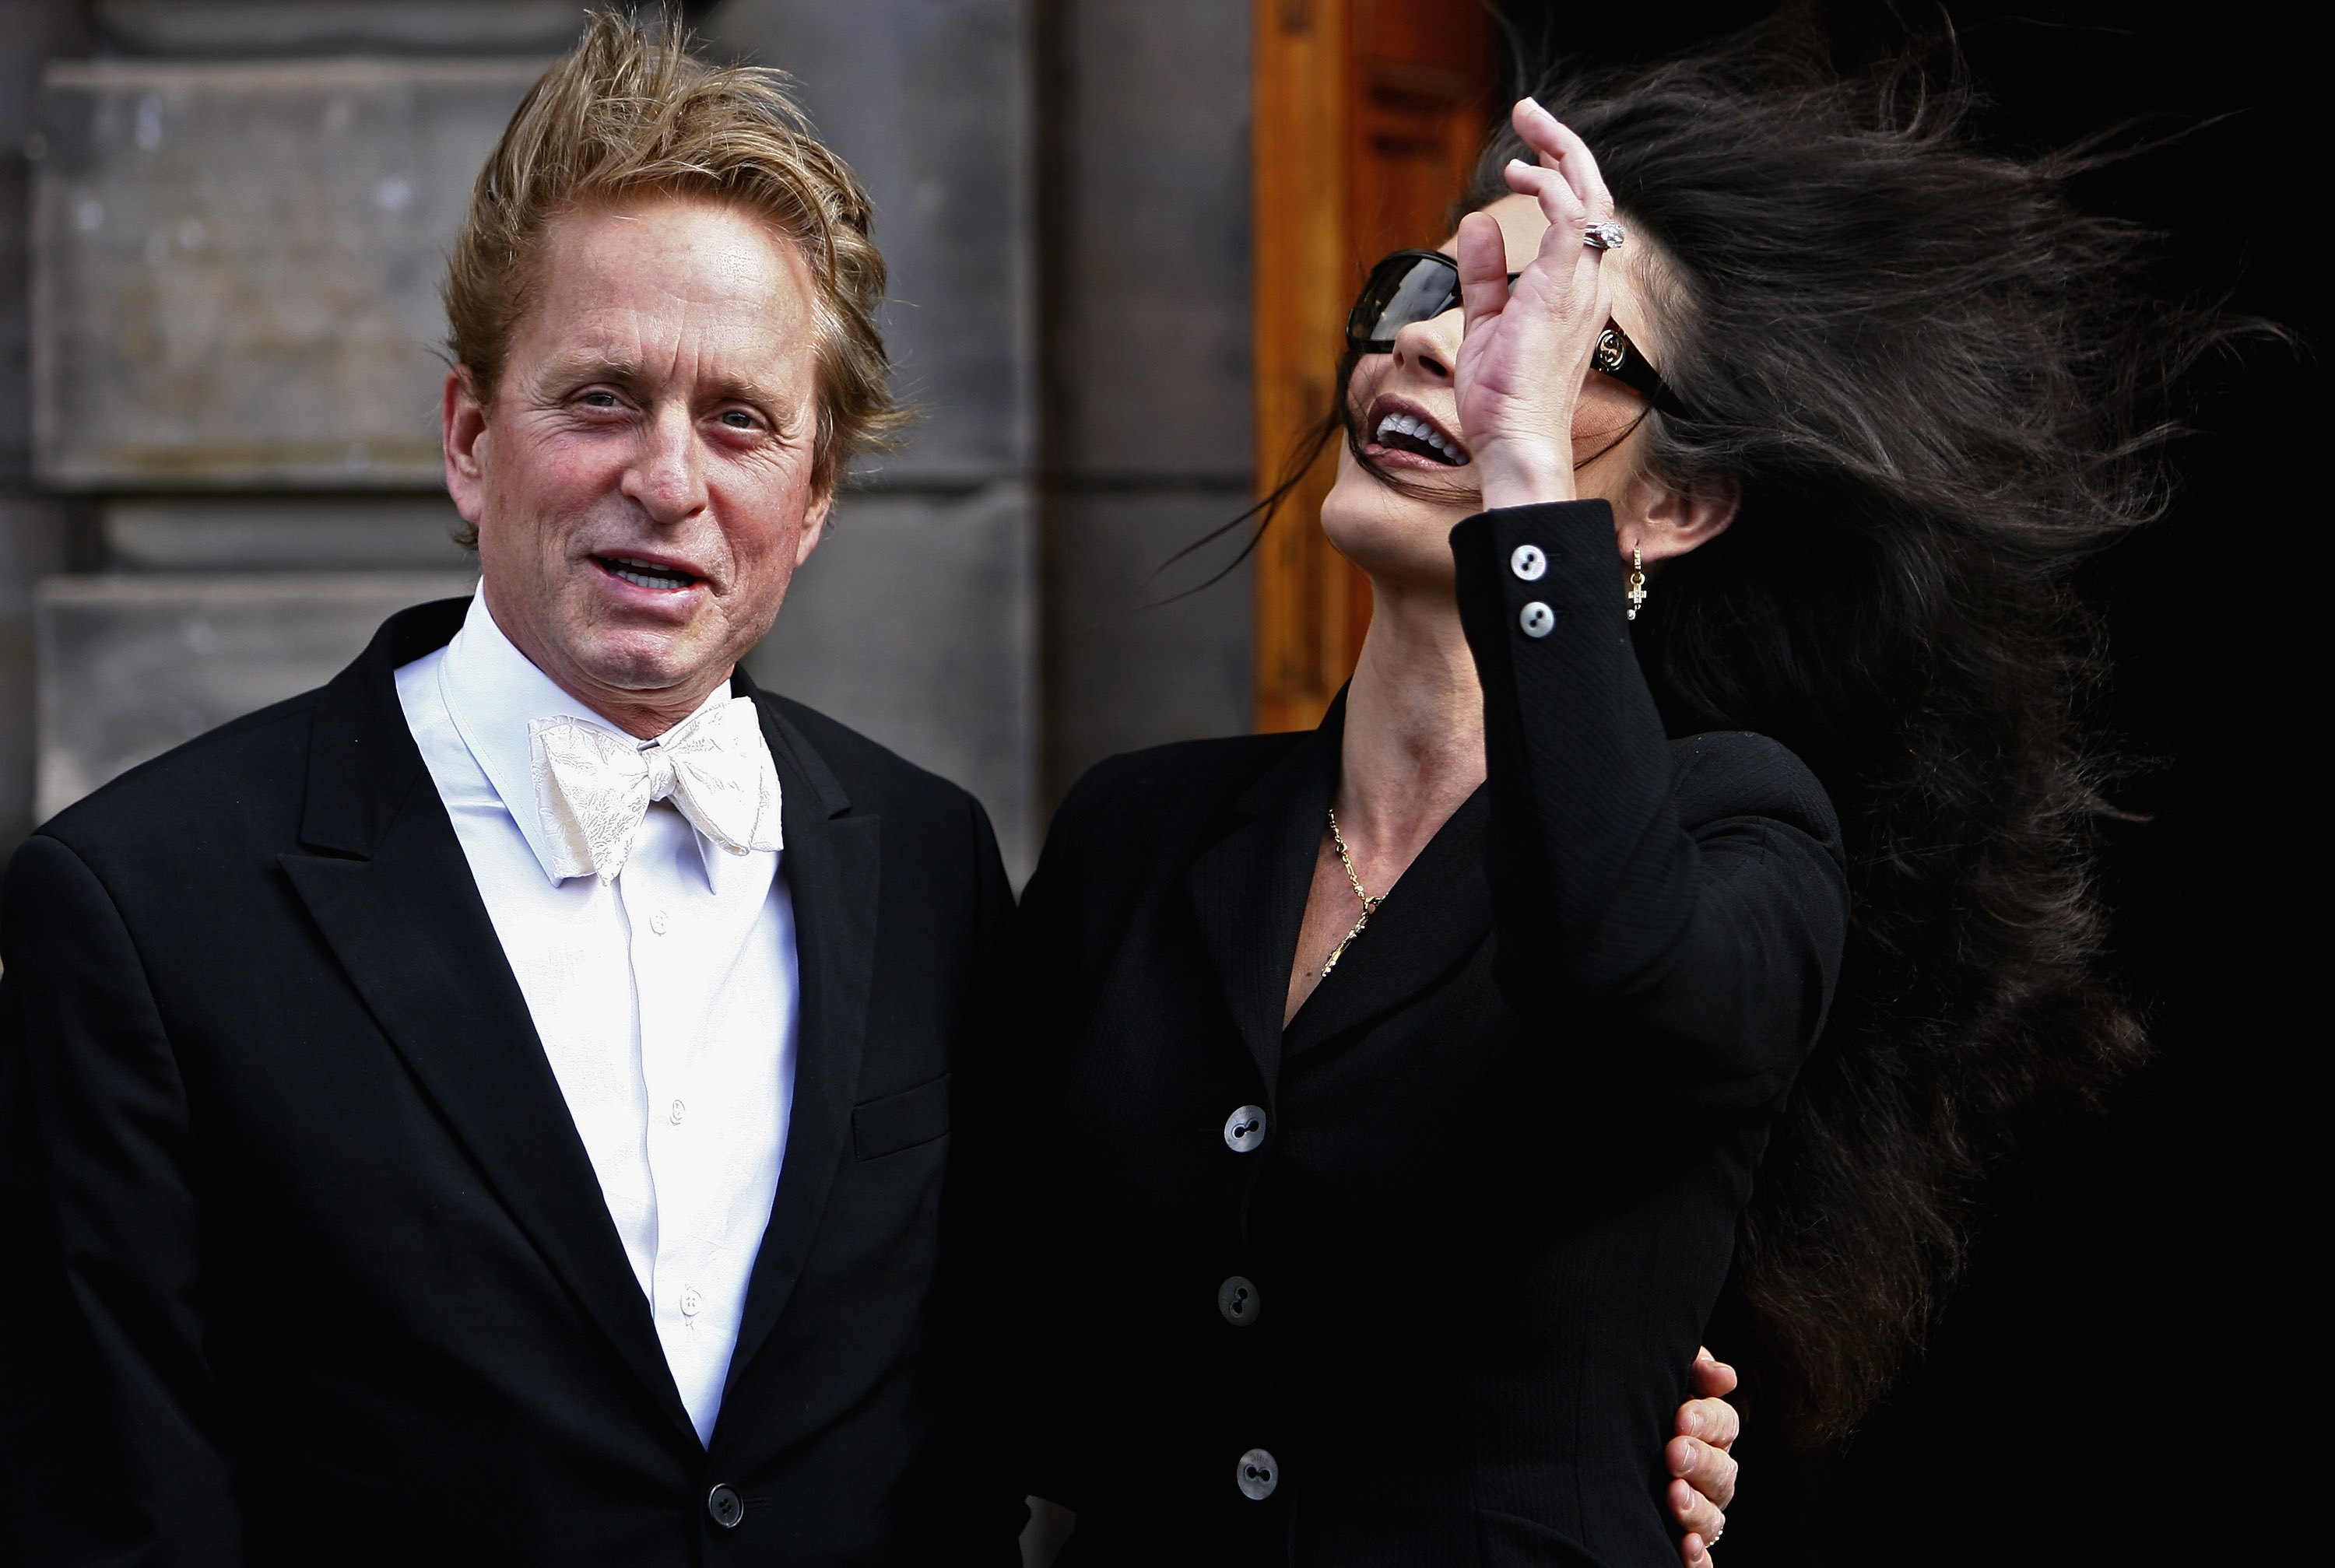 03943_Catherine_Zeta_Jones_Michael_Douglas_Honorary_Degree_Presentation_03